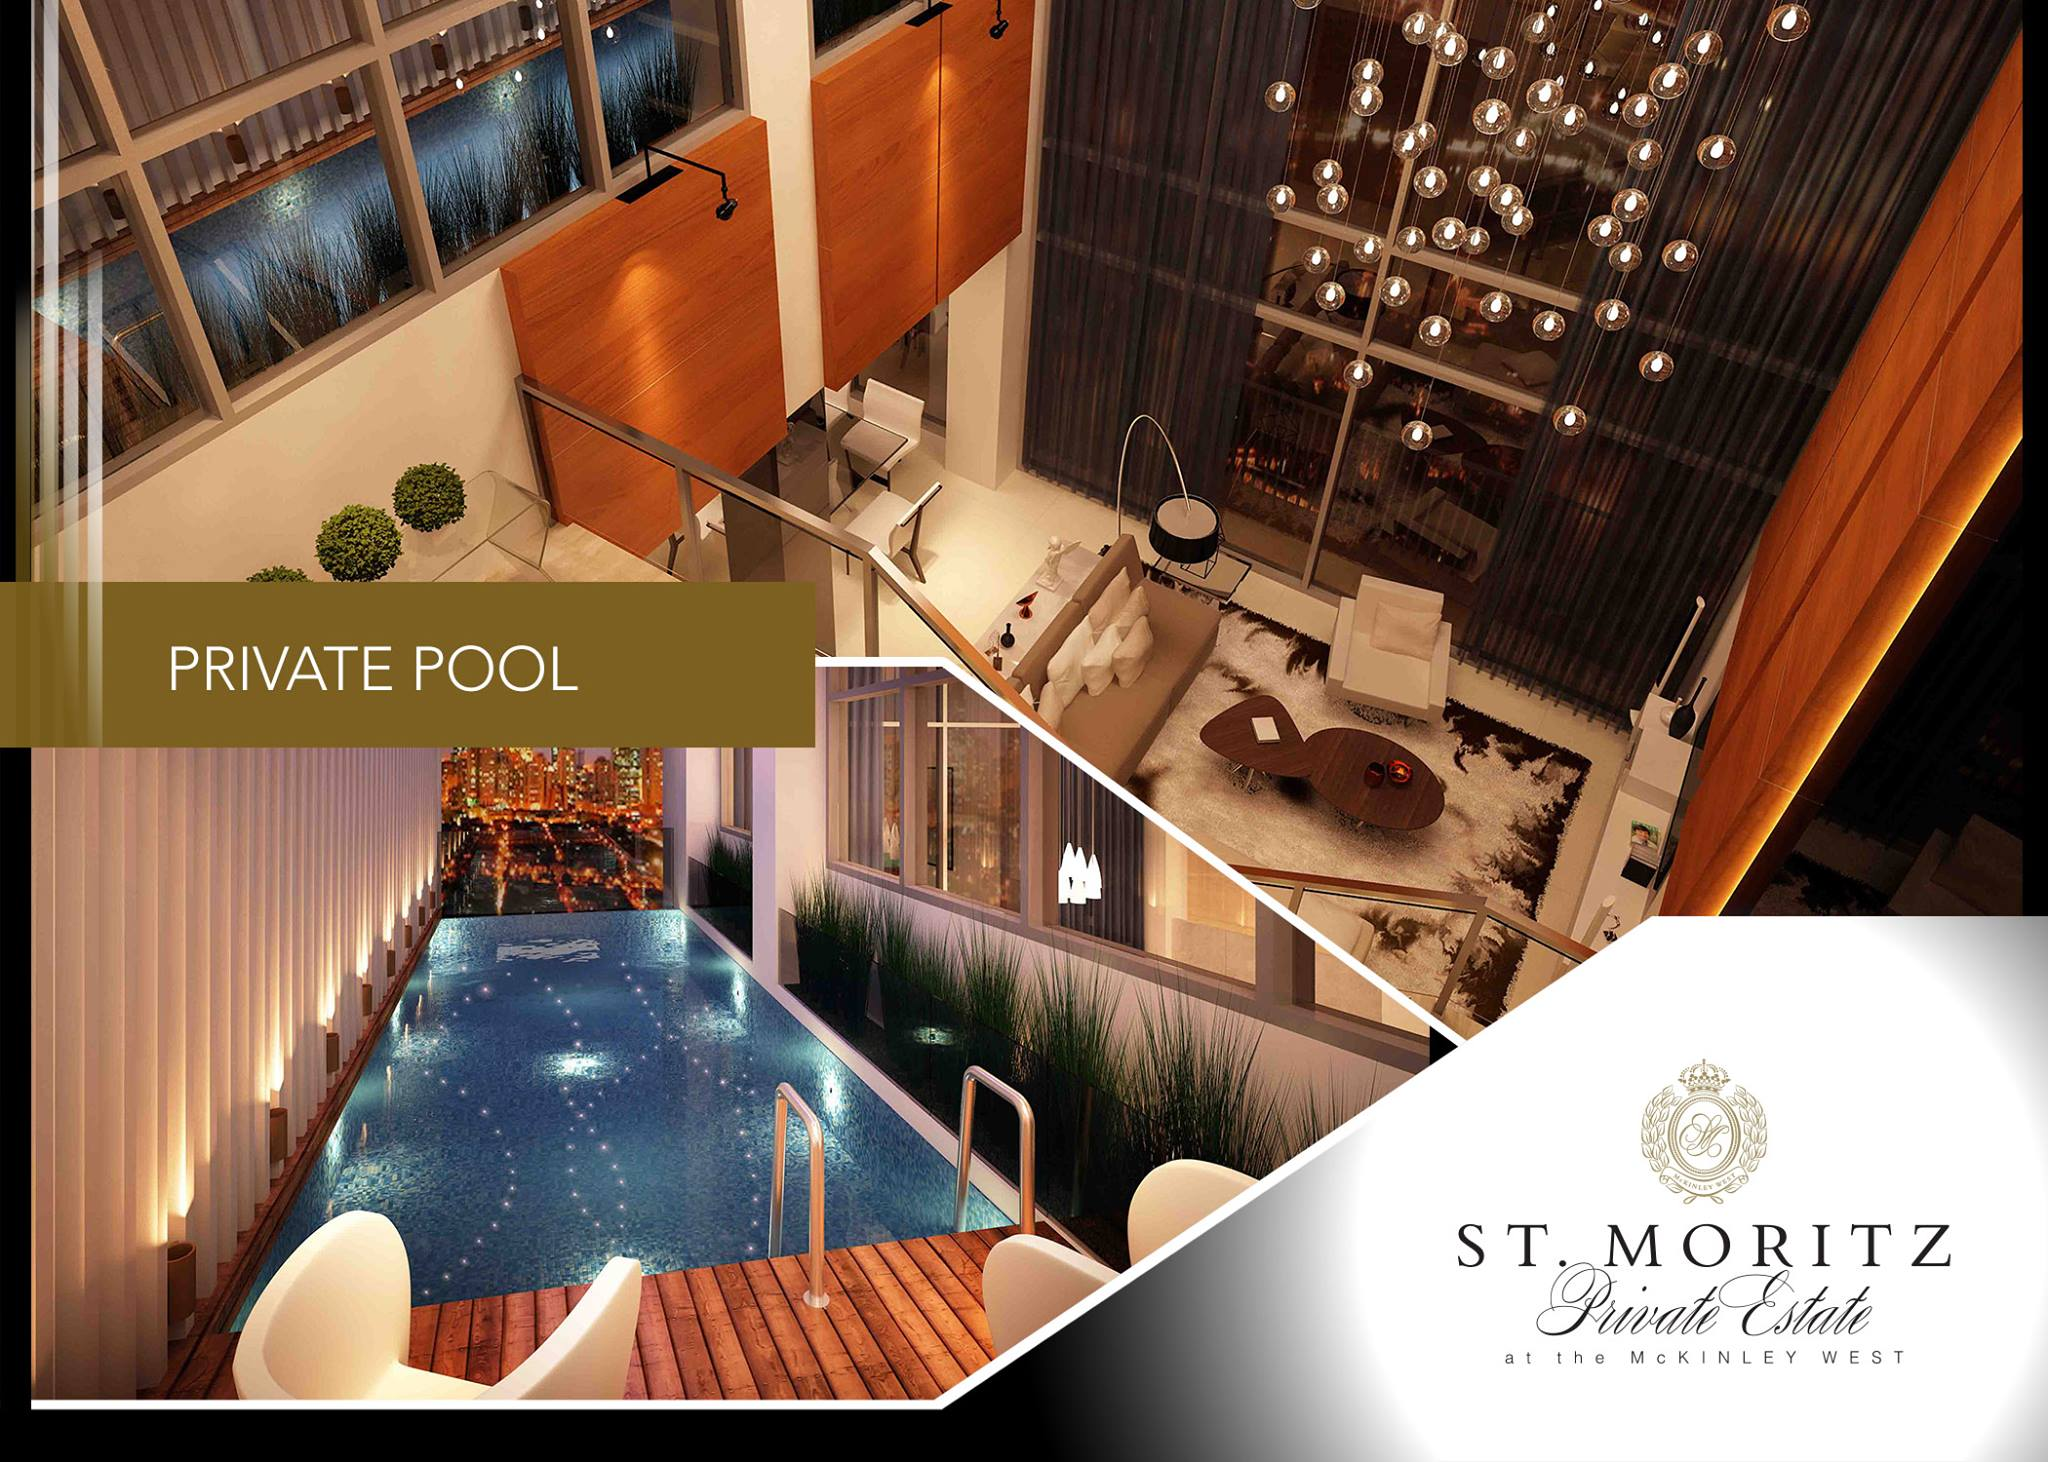 St. Moritz Penthouse Private Pool